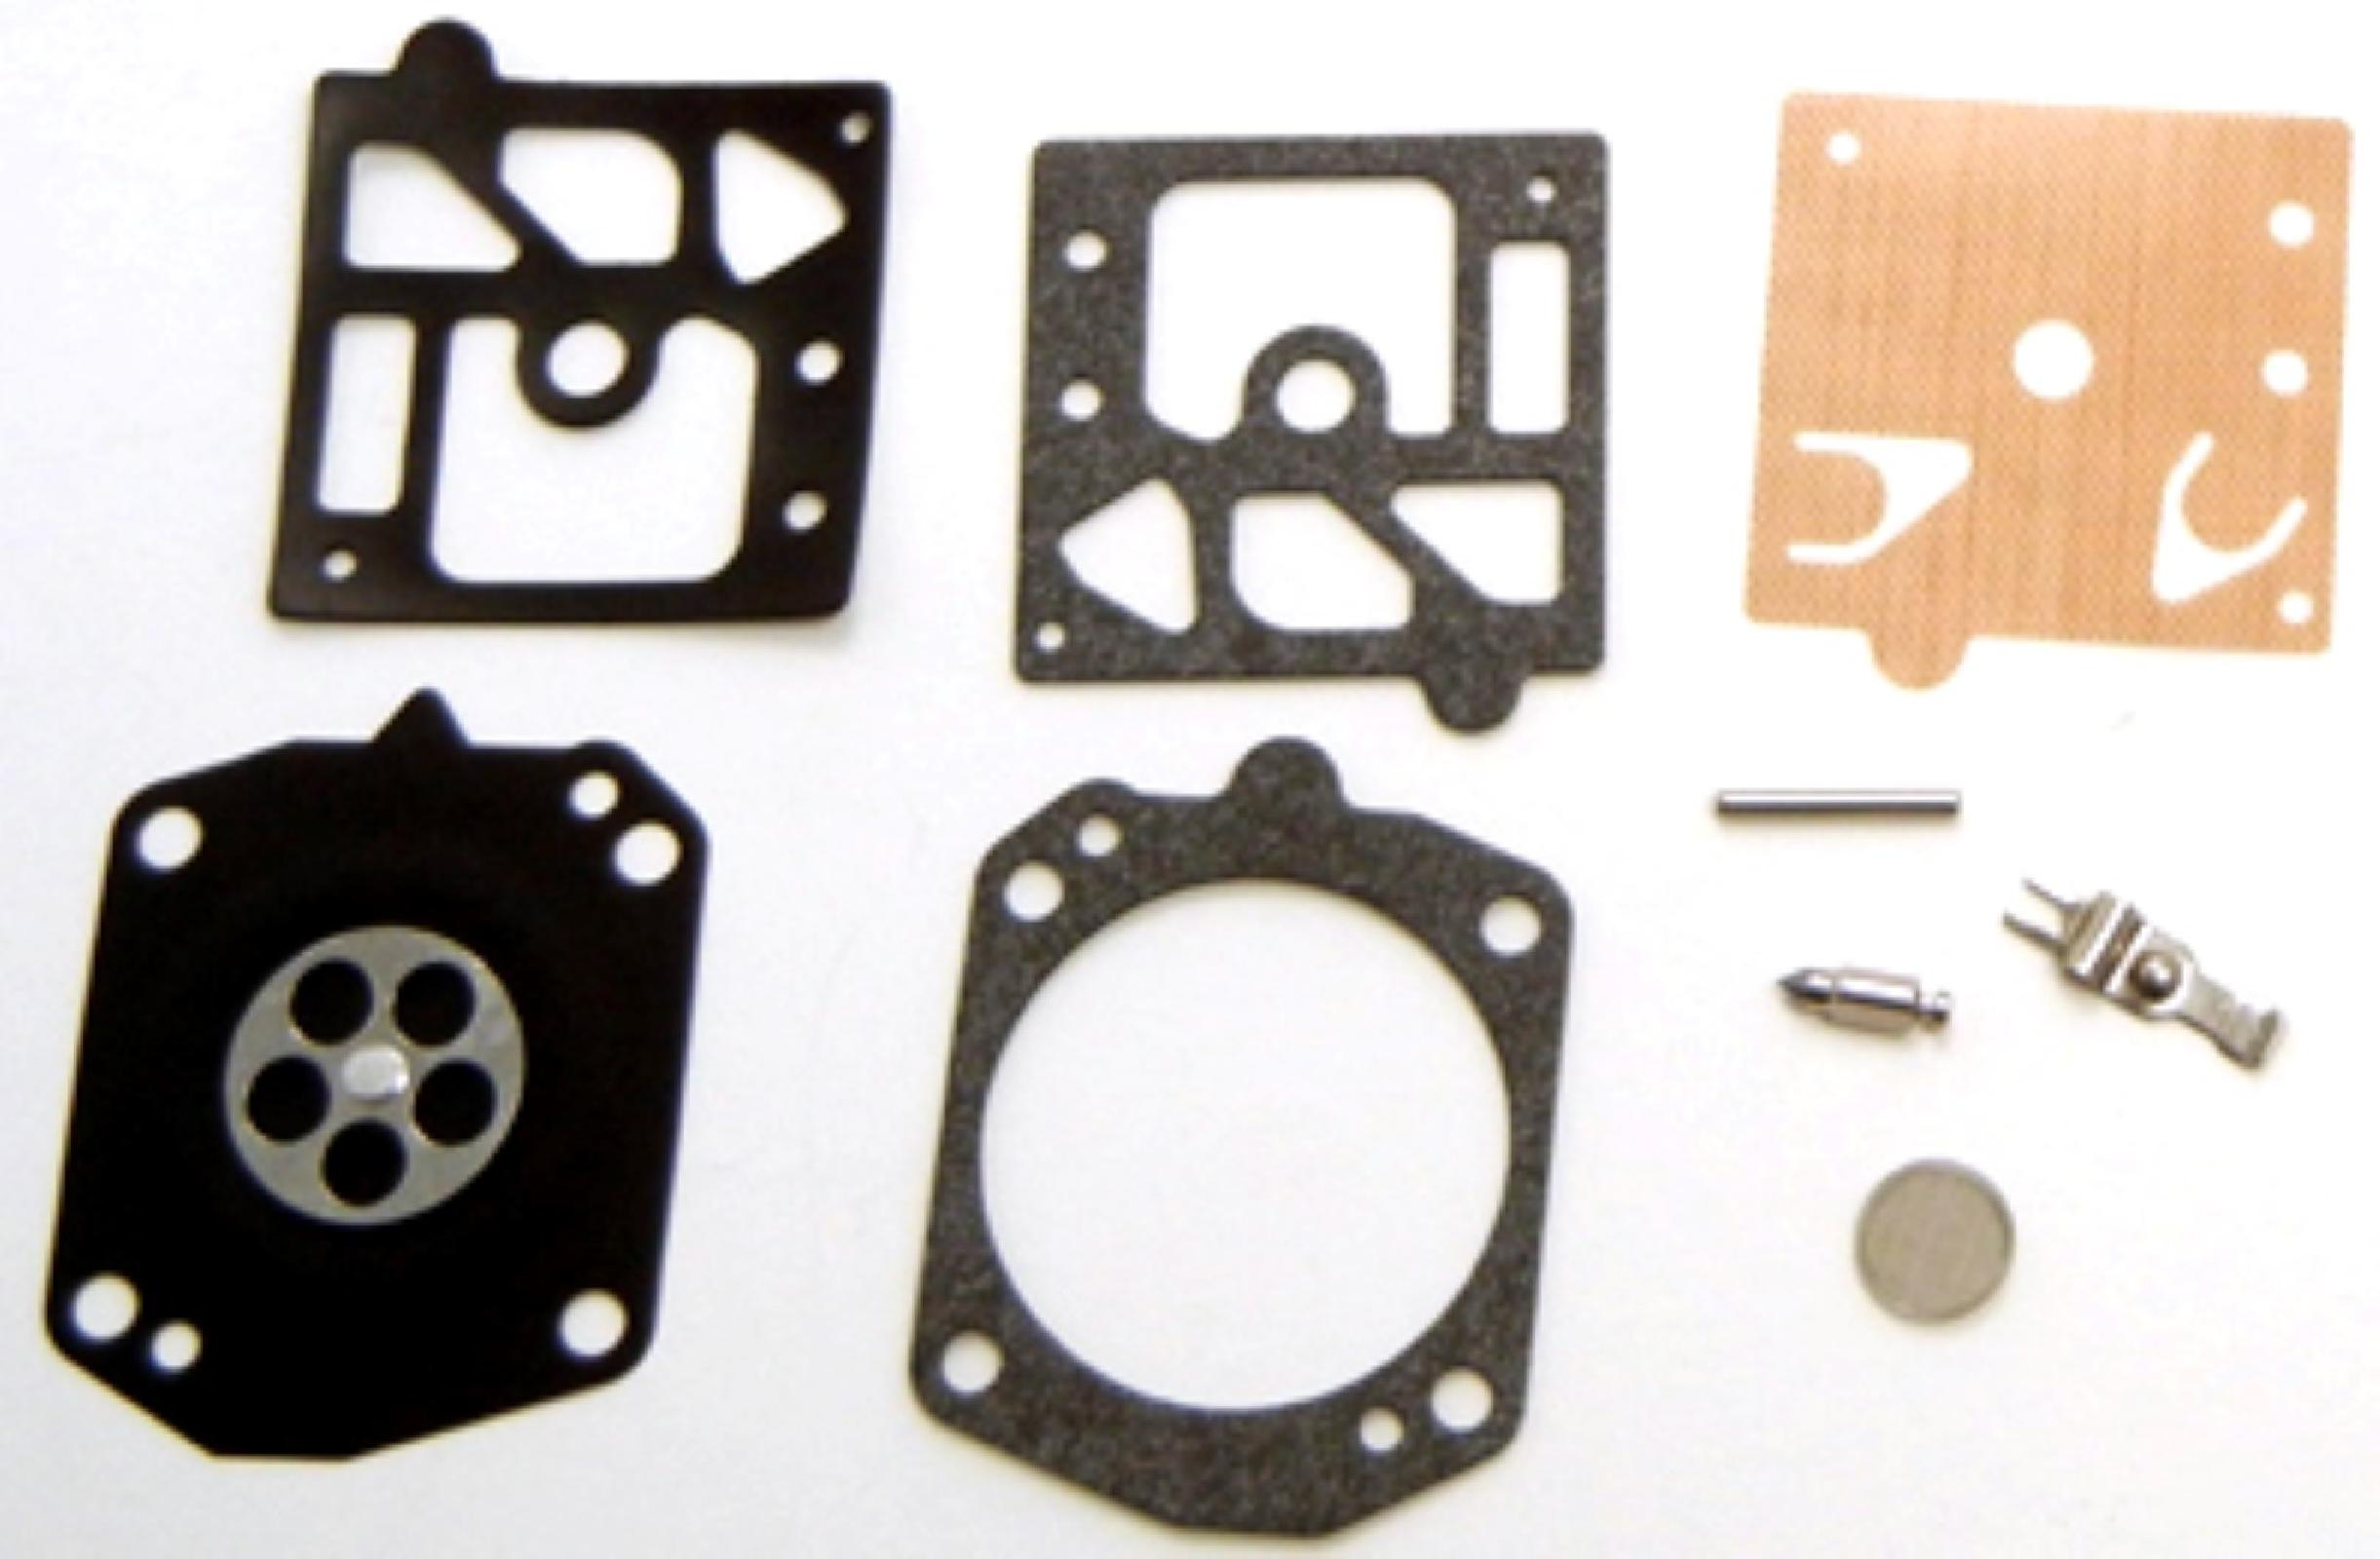 Carburetor Rebuild Kit (Walbro Carburetor)